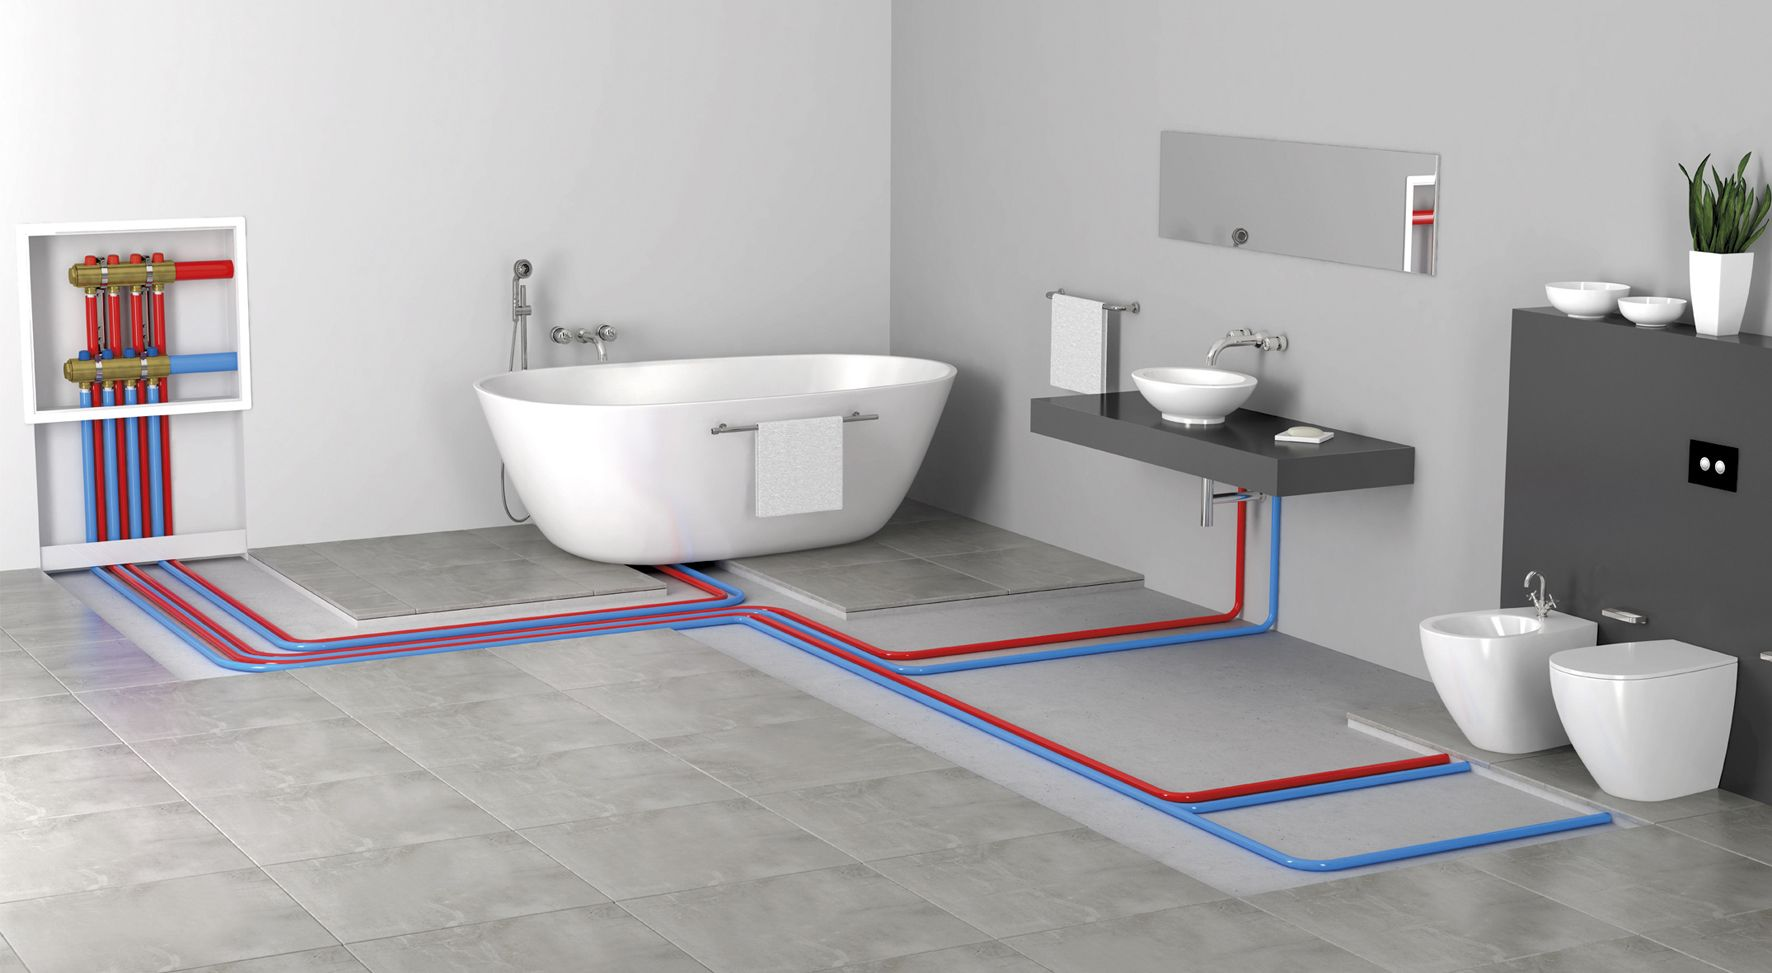 Italian bathroom fittings - Valsir Spa Is An Italian Producer Of In Wall And Exposed Flush Cisterns Design